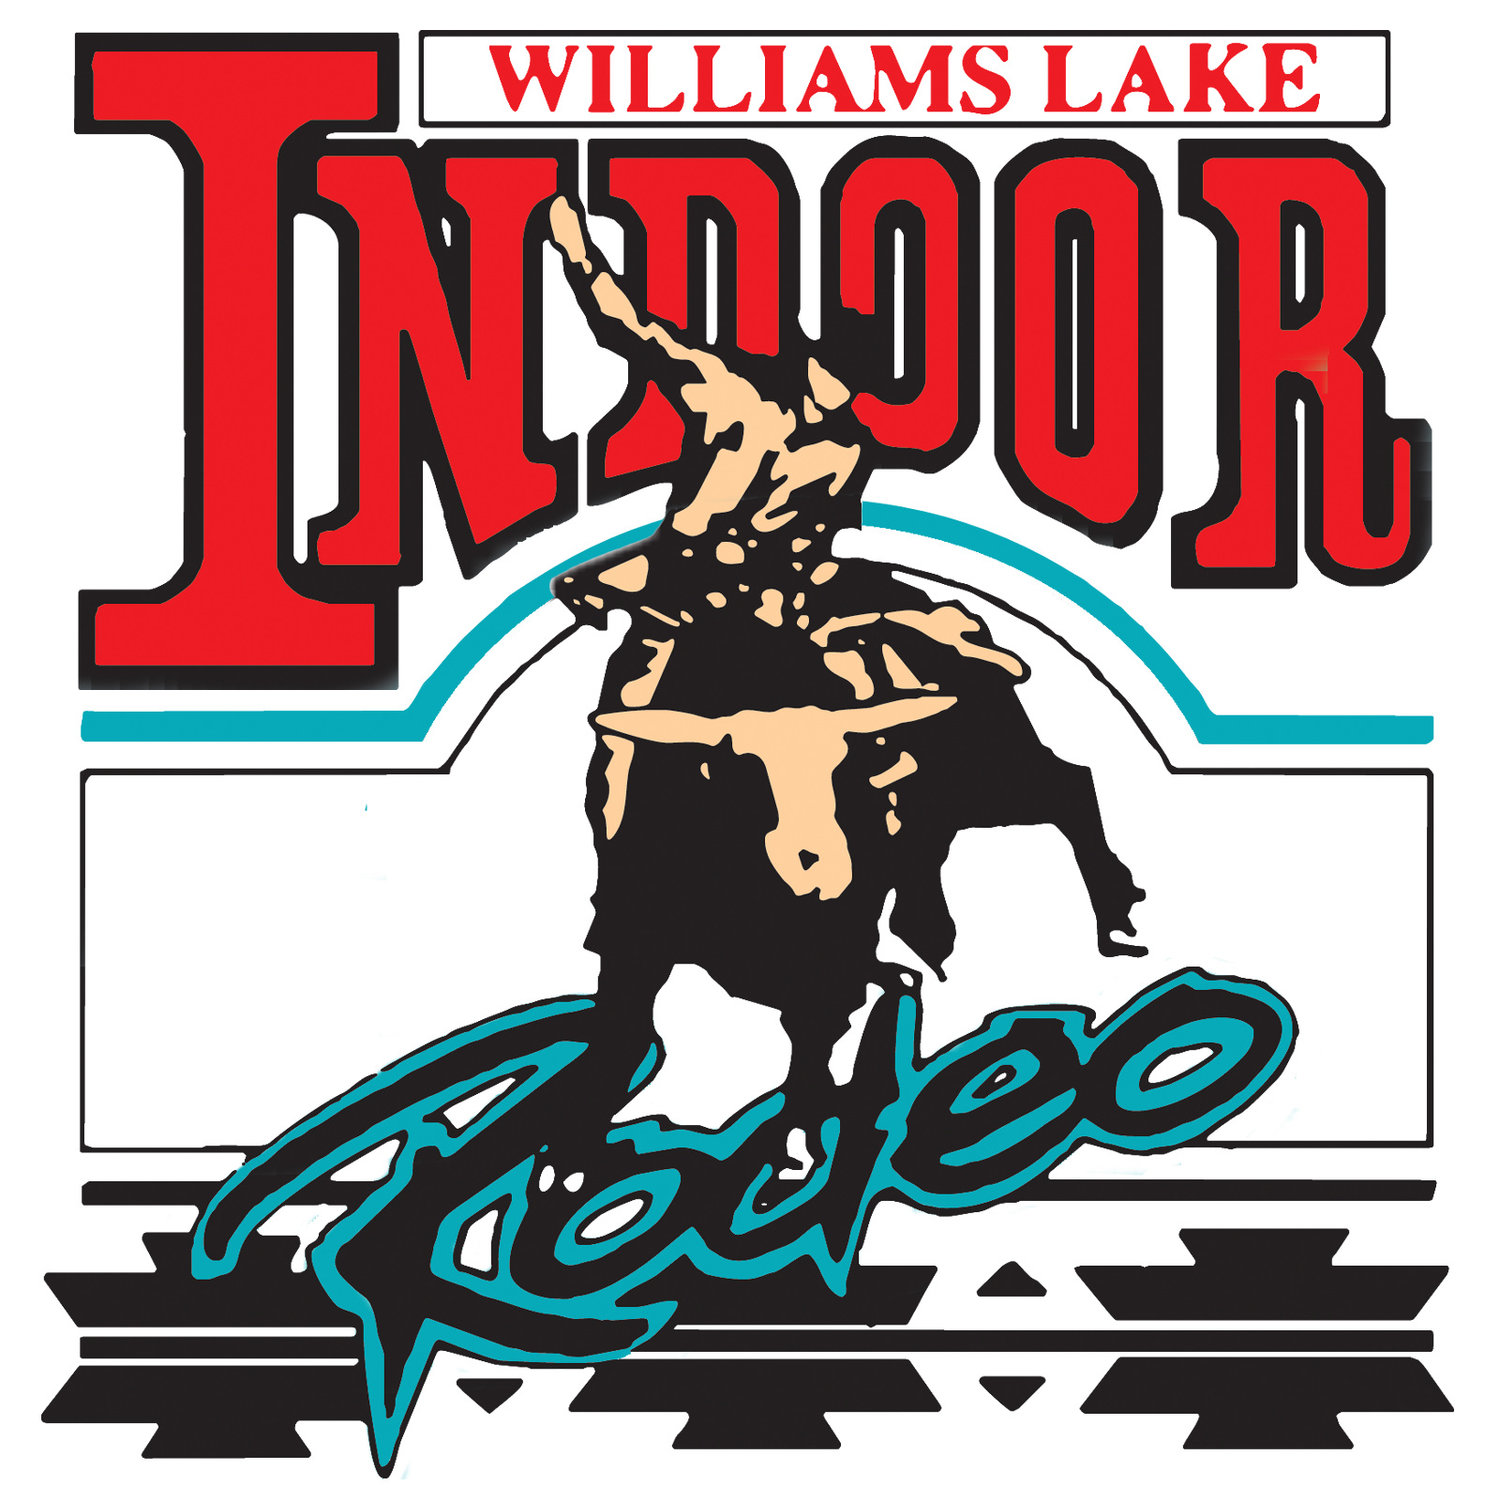 29th Annual Williams Lake Indoor Rodeo  April 26-29, 2019